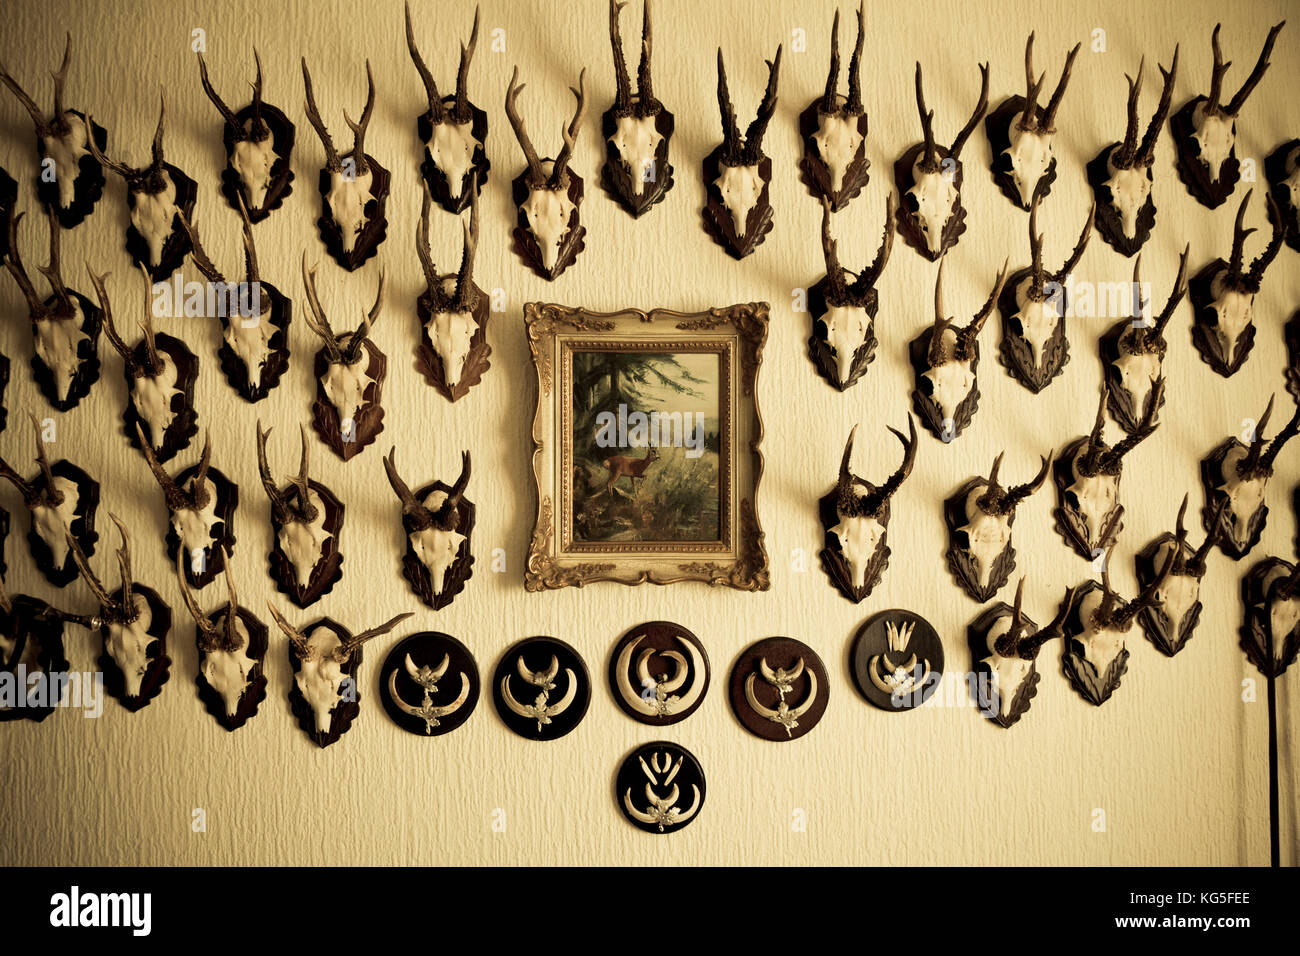 Antlers on the wall, close-up Stock Photo: 164849734 - Alamy